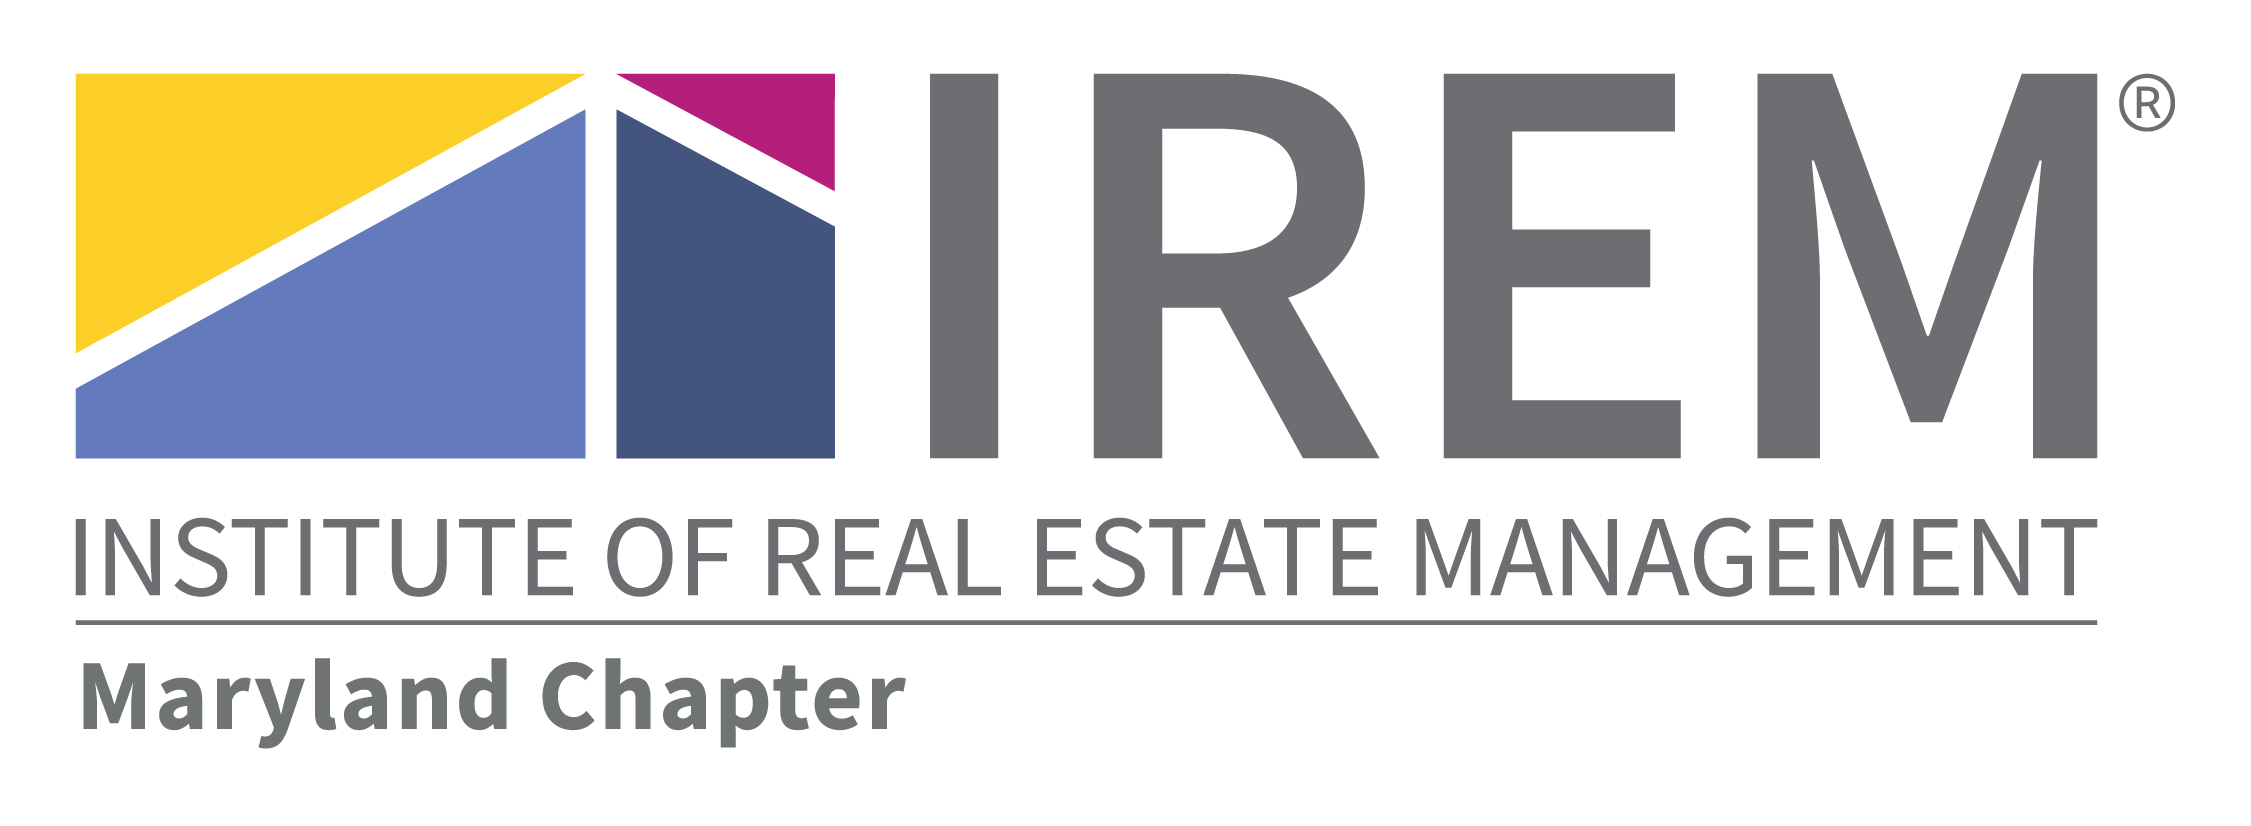 IREM Maryland Chapter No. 16 Logo